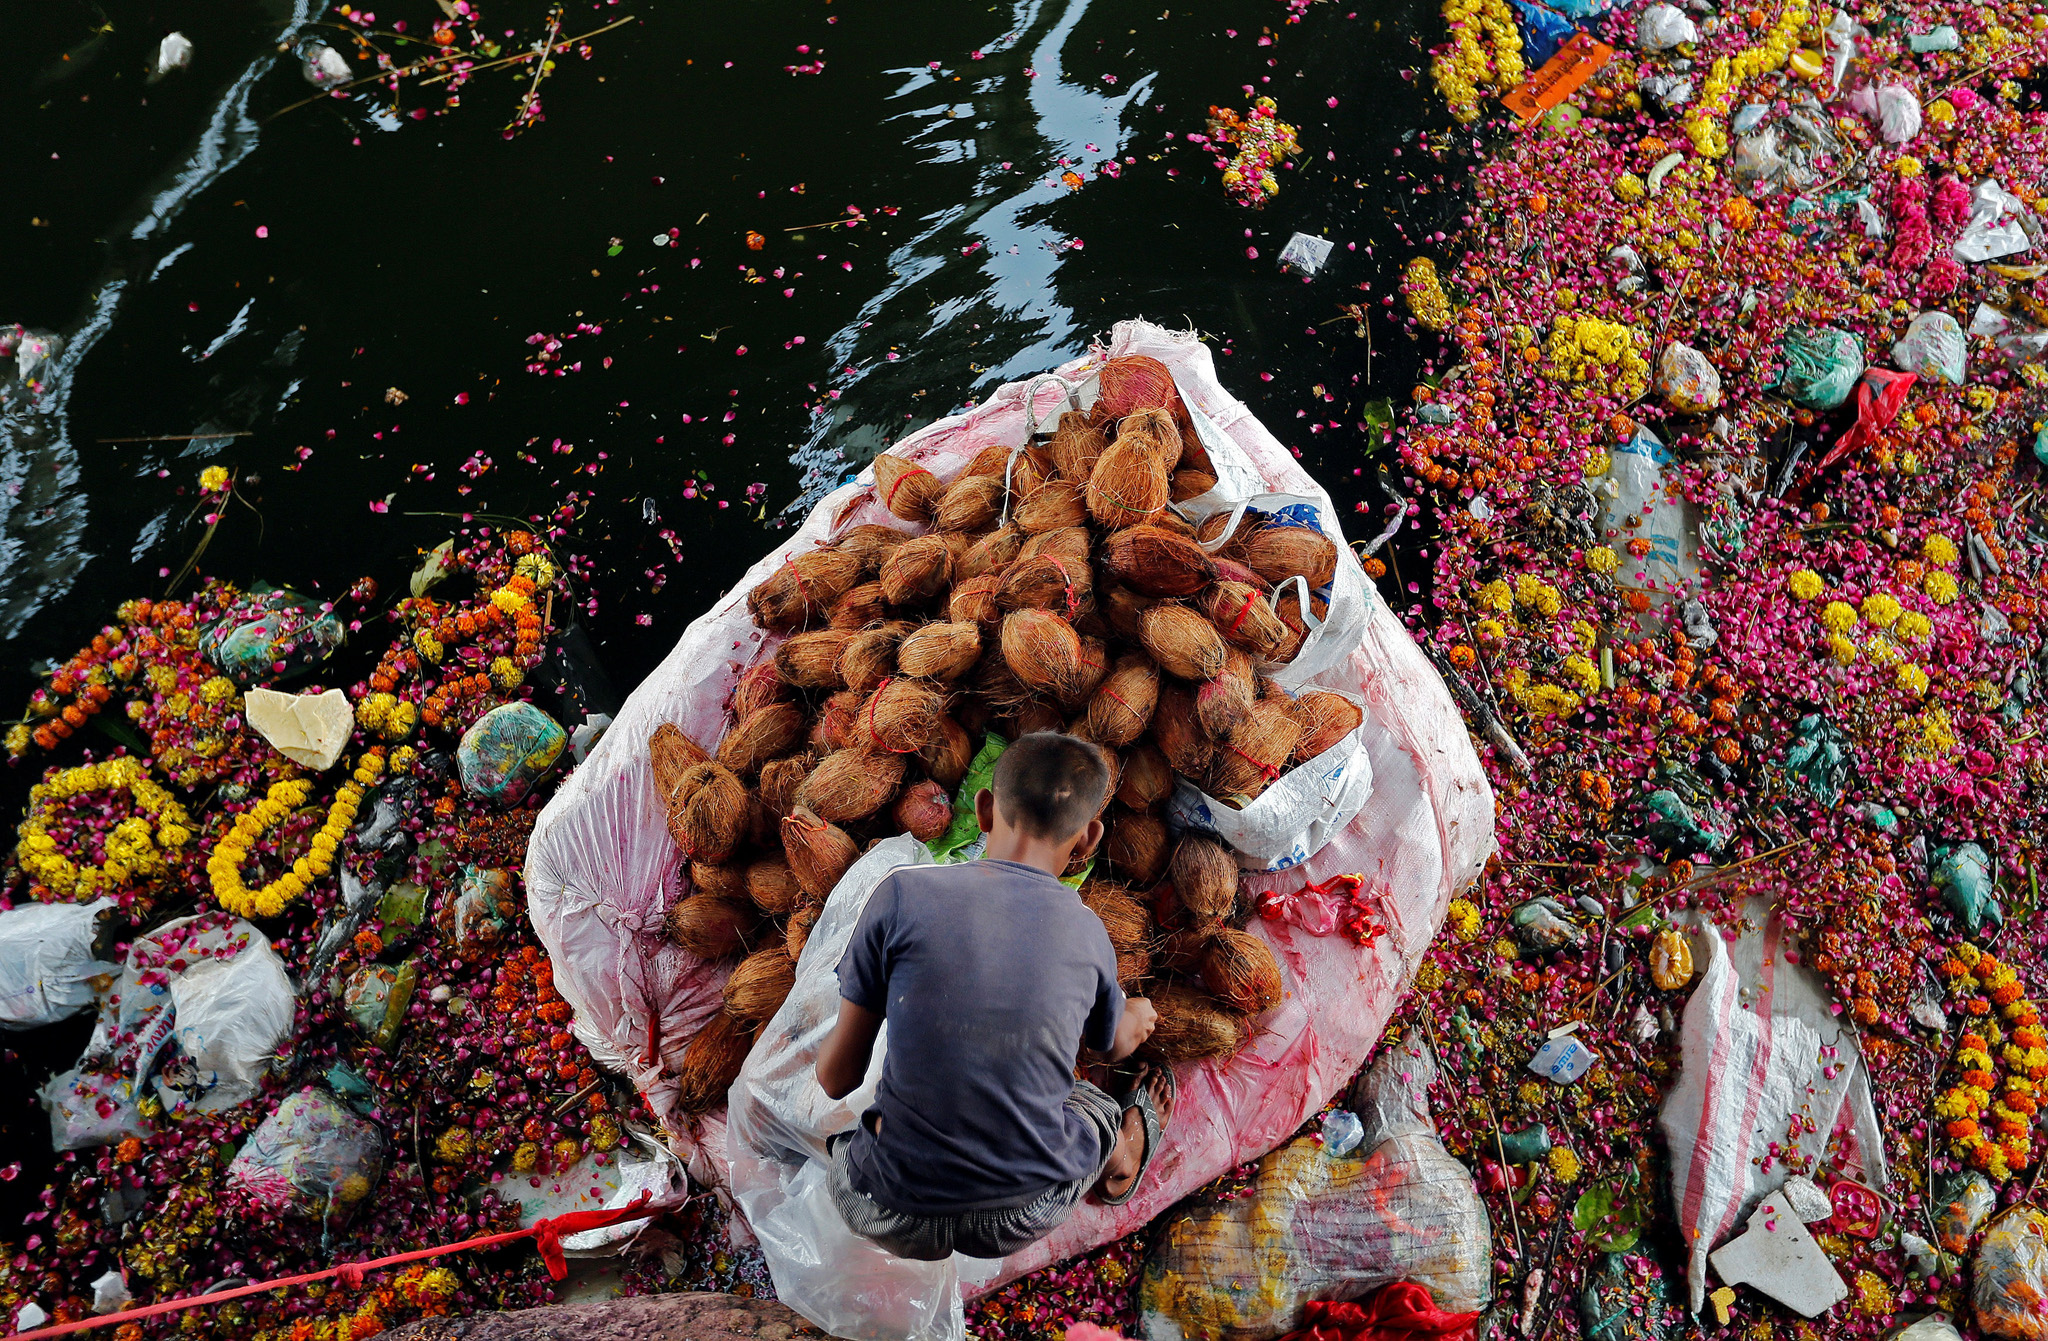 A man collects coconuts thrown as offerings by worshippers into the Sabarmati river, a day after the immersion of idols of the Hindu god Ganesh, the deity of prosperity, in Ahmedabad, India